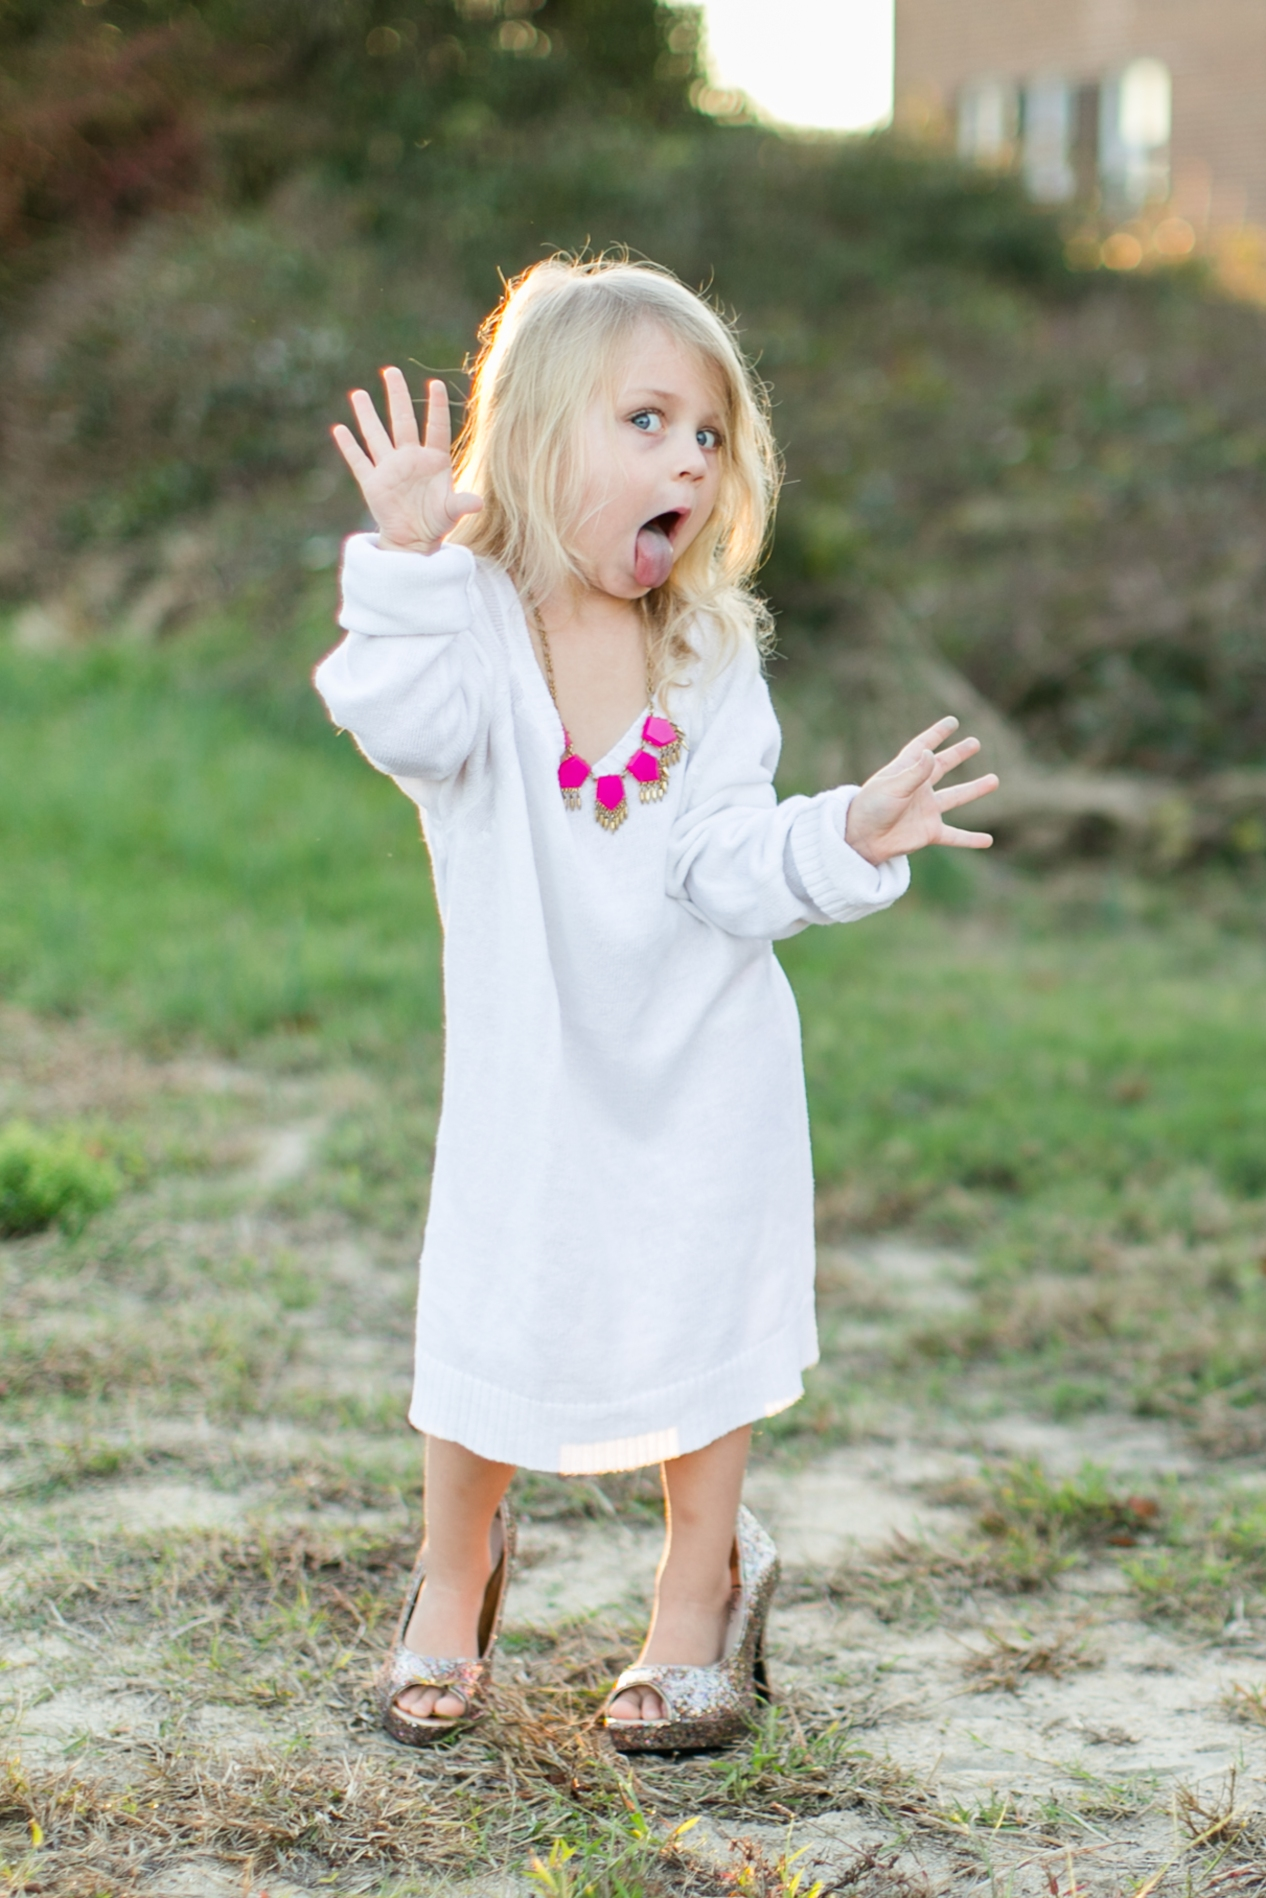 cammy-white-sweater-4-years-old-9